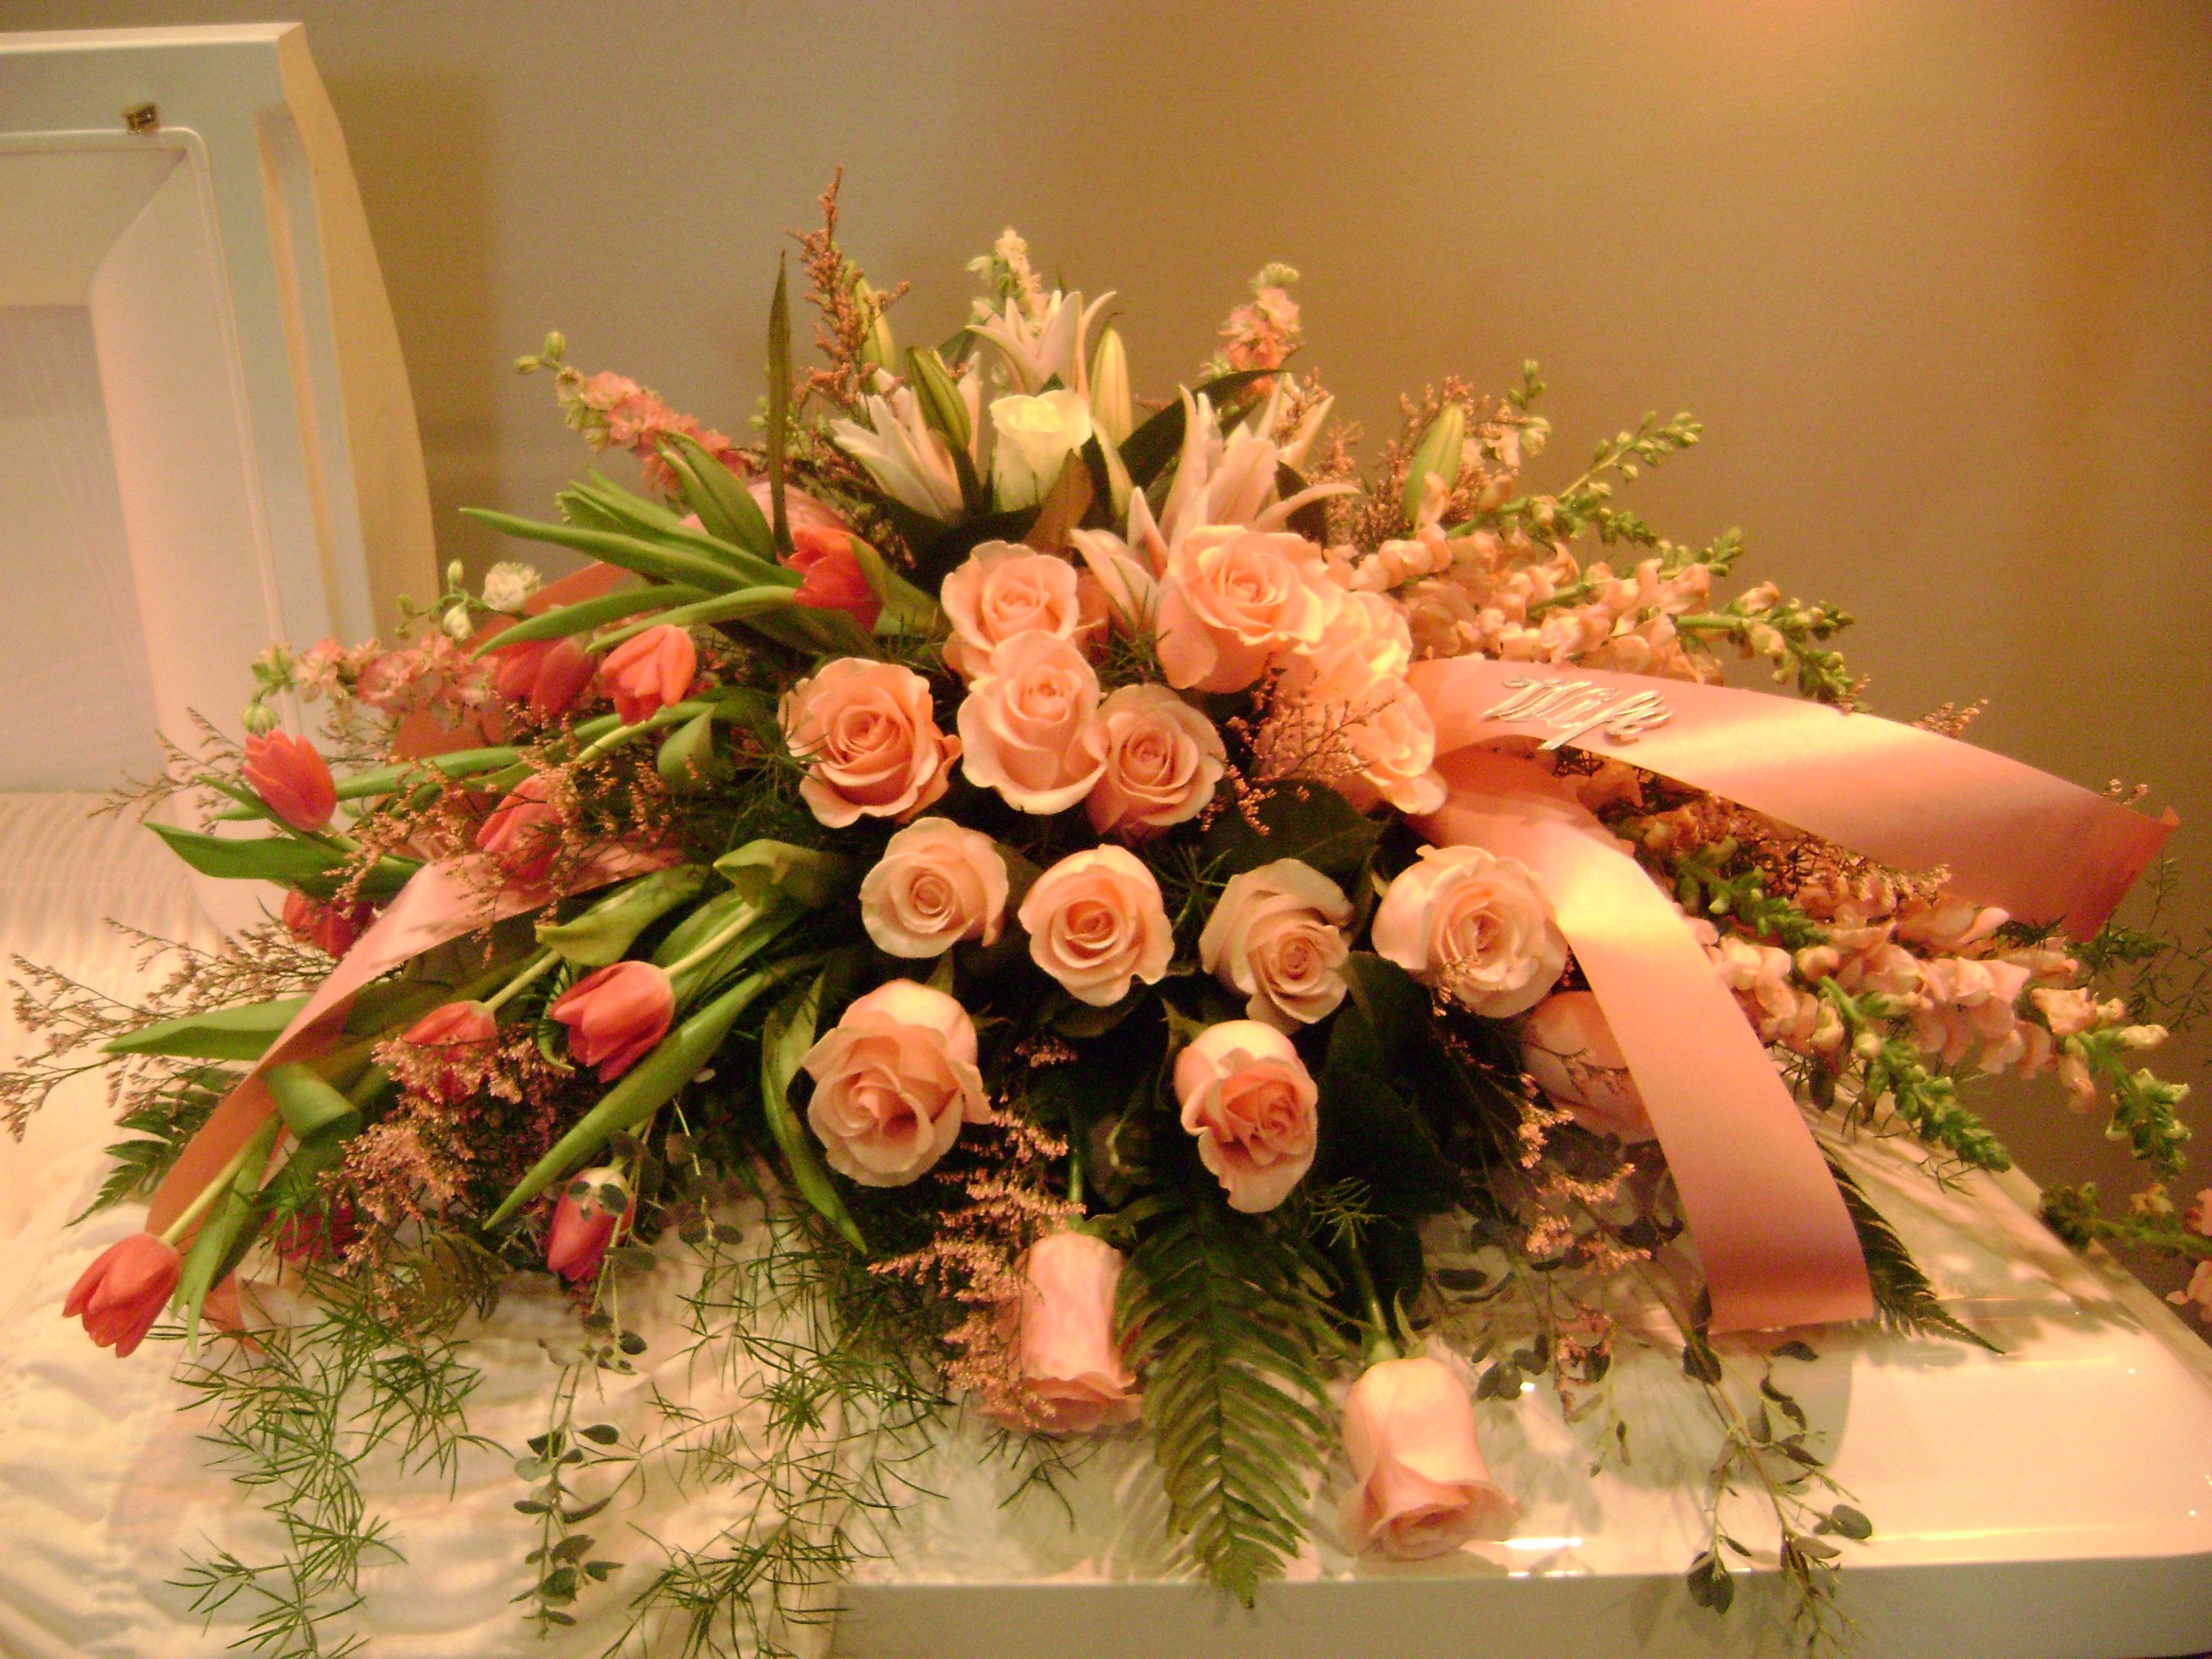 95 best funeral images on pinterest funeral flowers sympathy casket spray funeral arrangementsflower dhlflorist Gallery